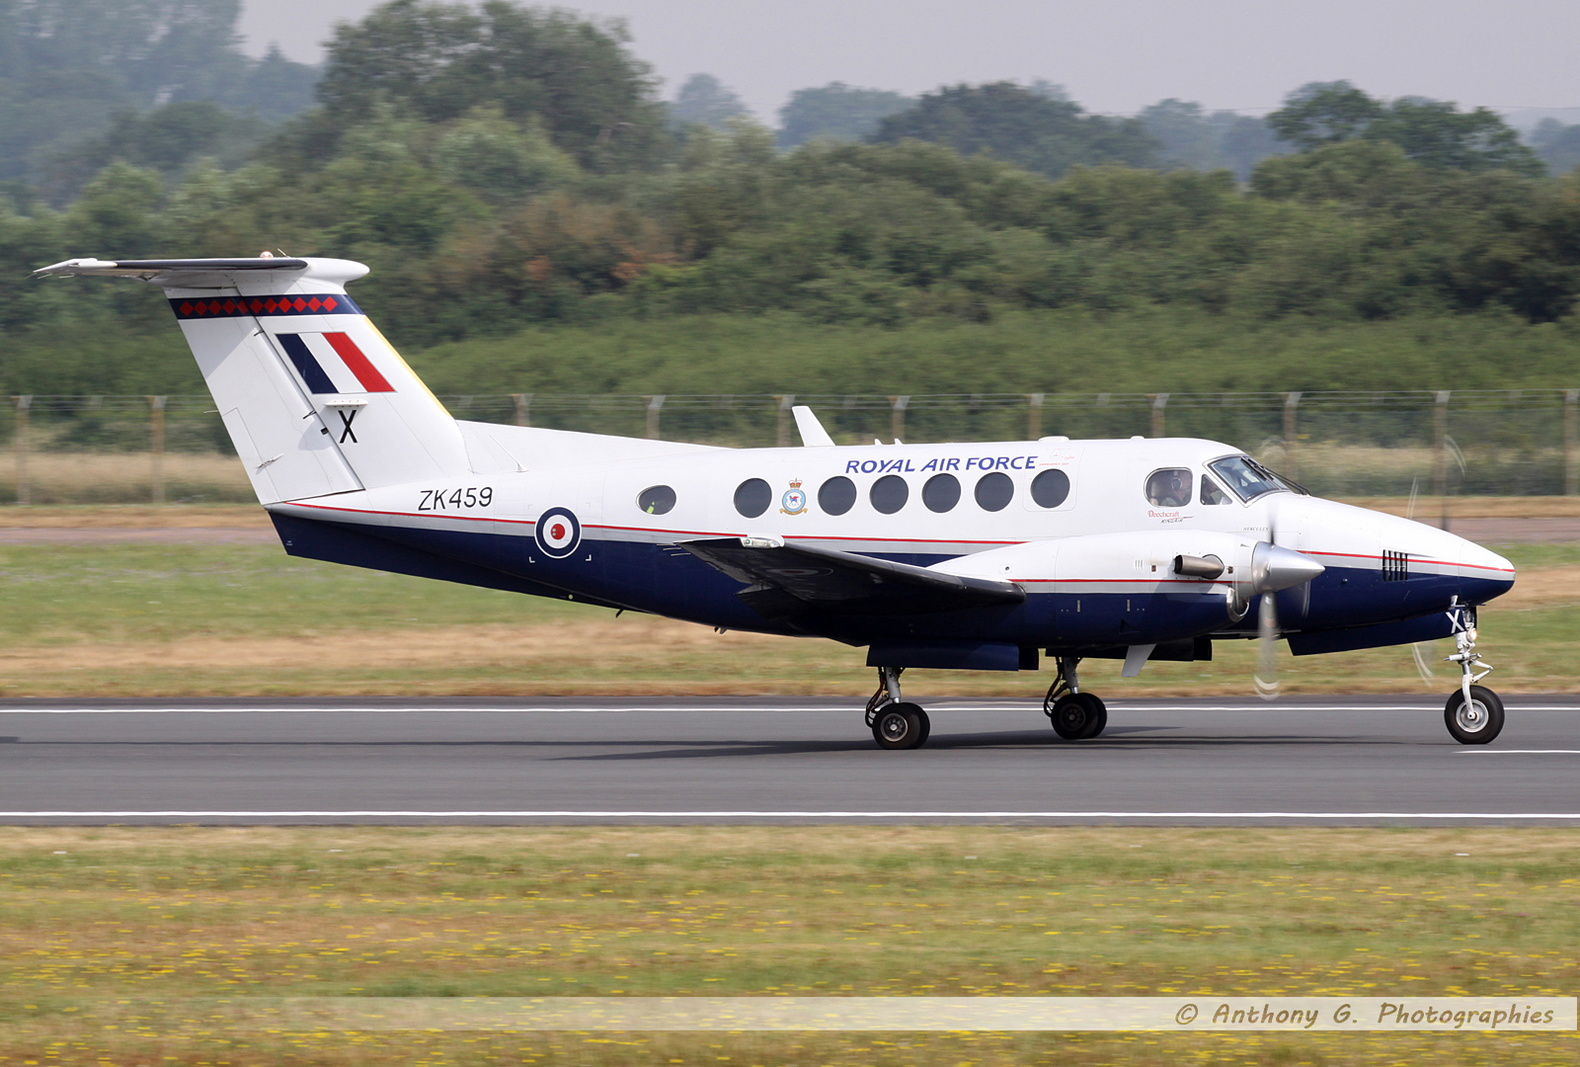 King Air 200 Royal Air Force - ZK459.jpg